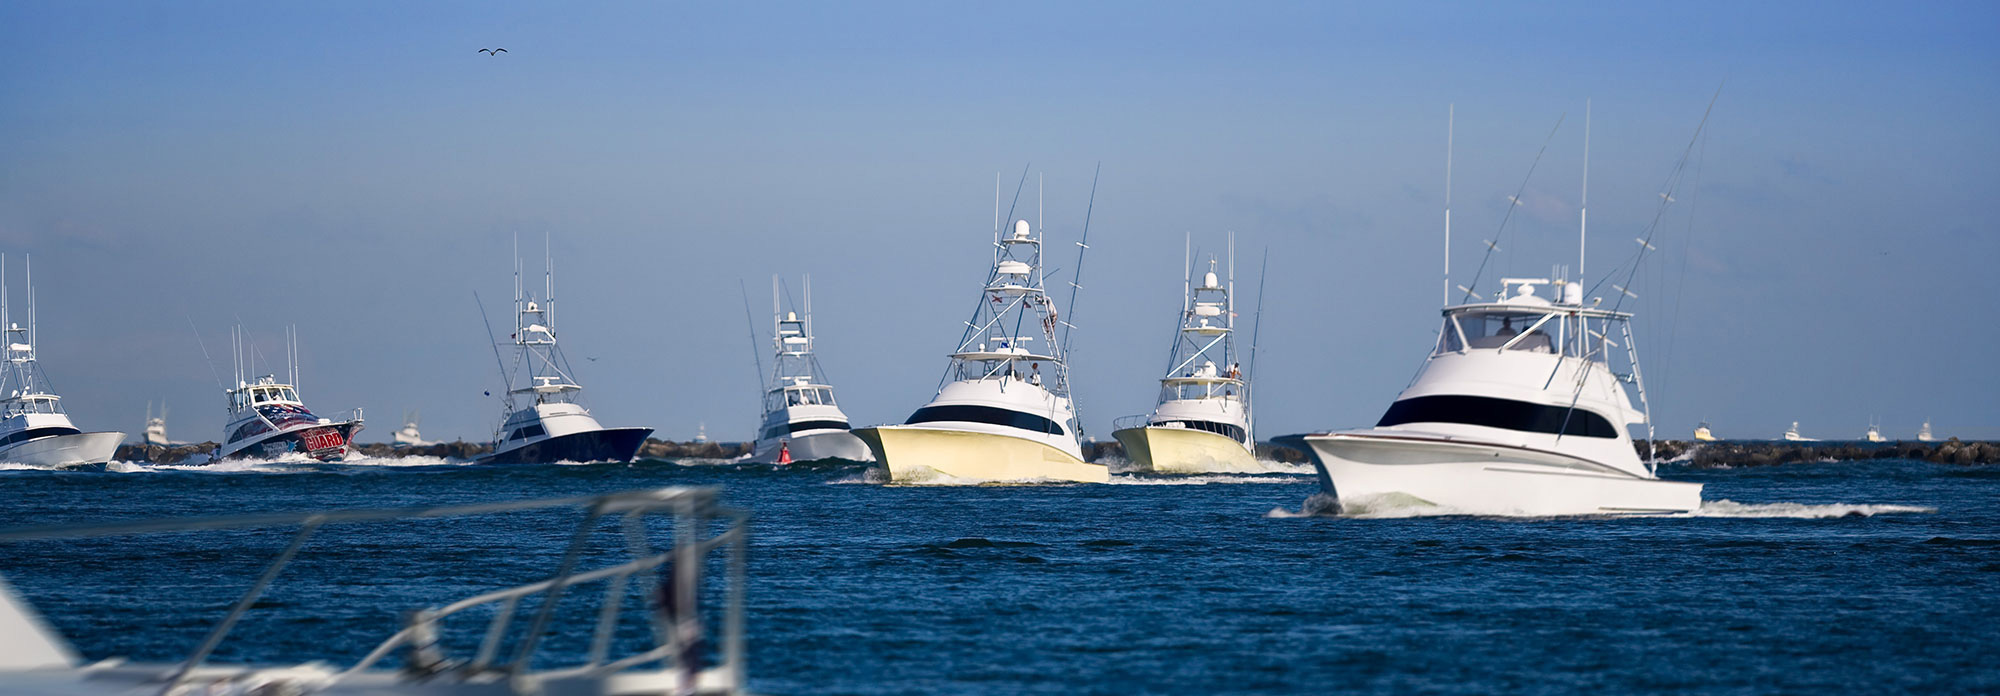 multiple offshore fishing boats in ocean city inlet